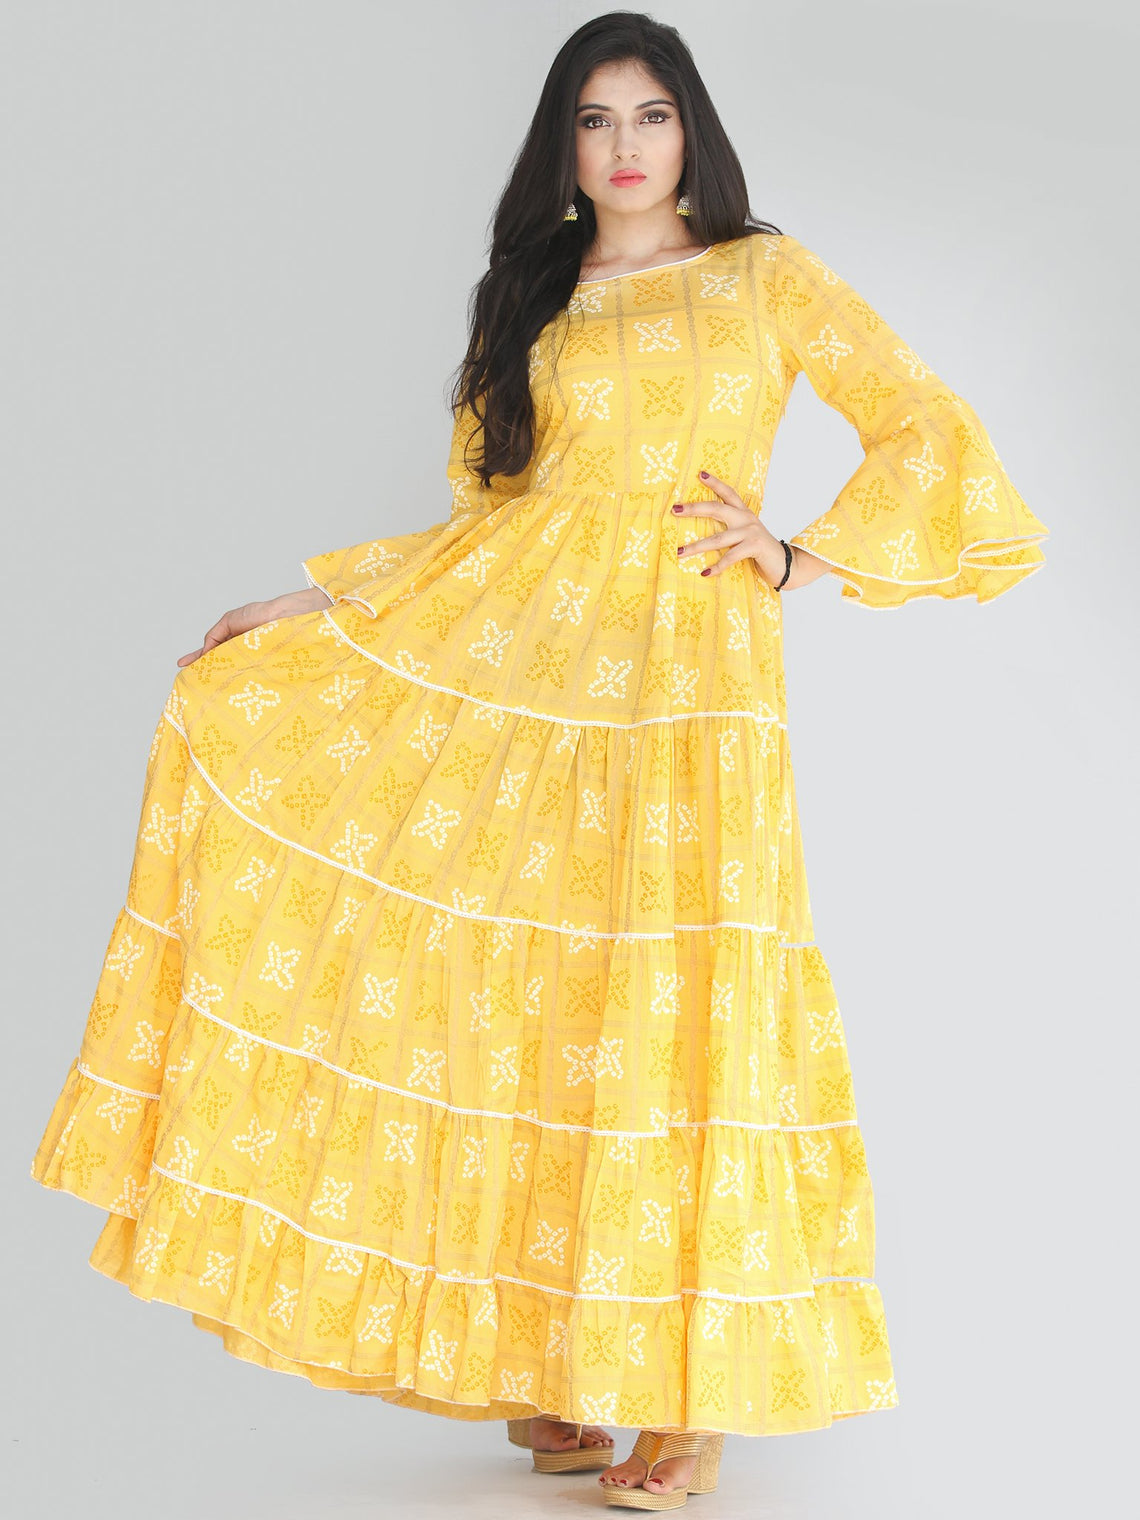 Maira - Yellow Bandhani Printed Tier Long Dress With Lace Insert - D407F2204